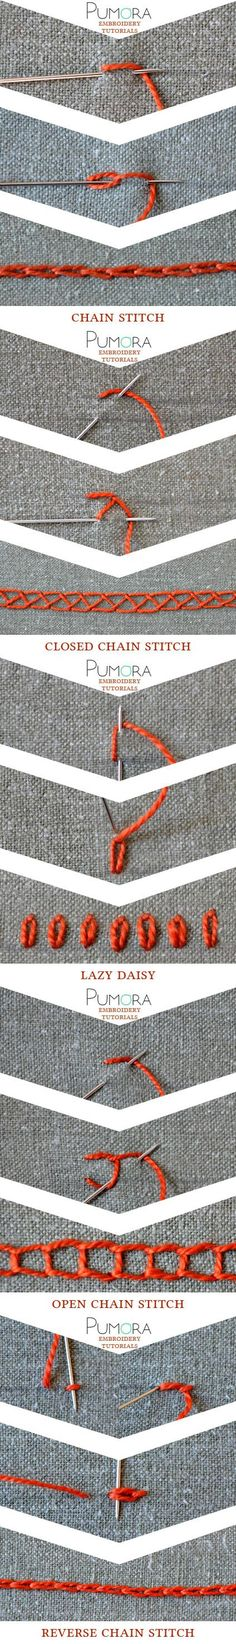 embroidery tutorials: chain stitch with variations broderie, ricamo, sticken, bordado